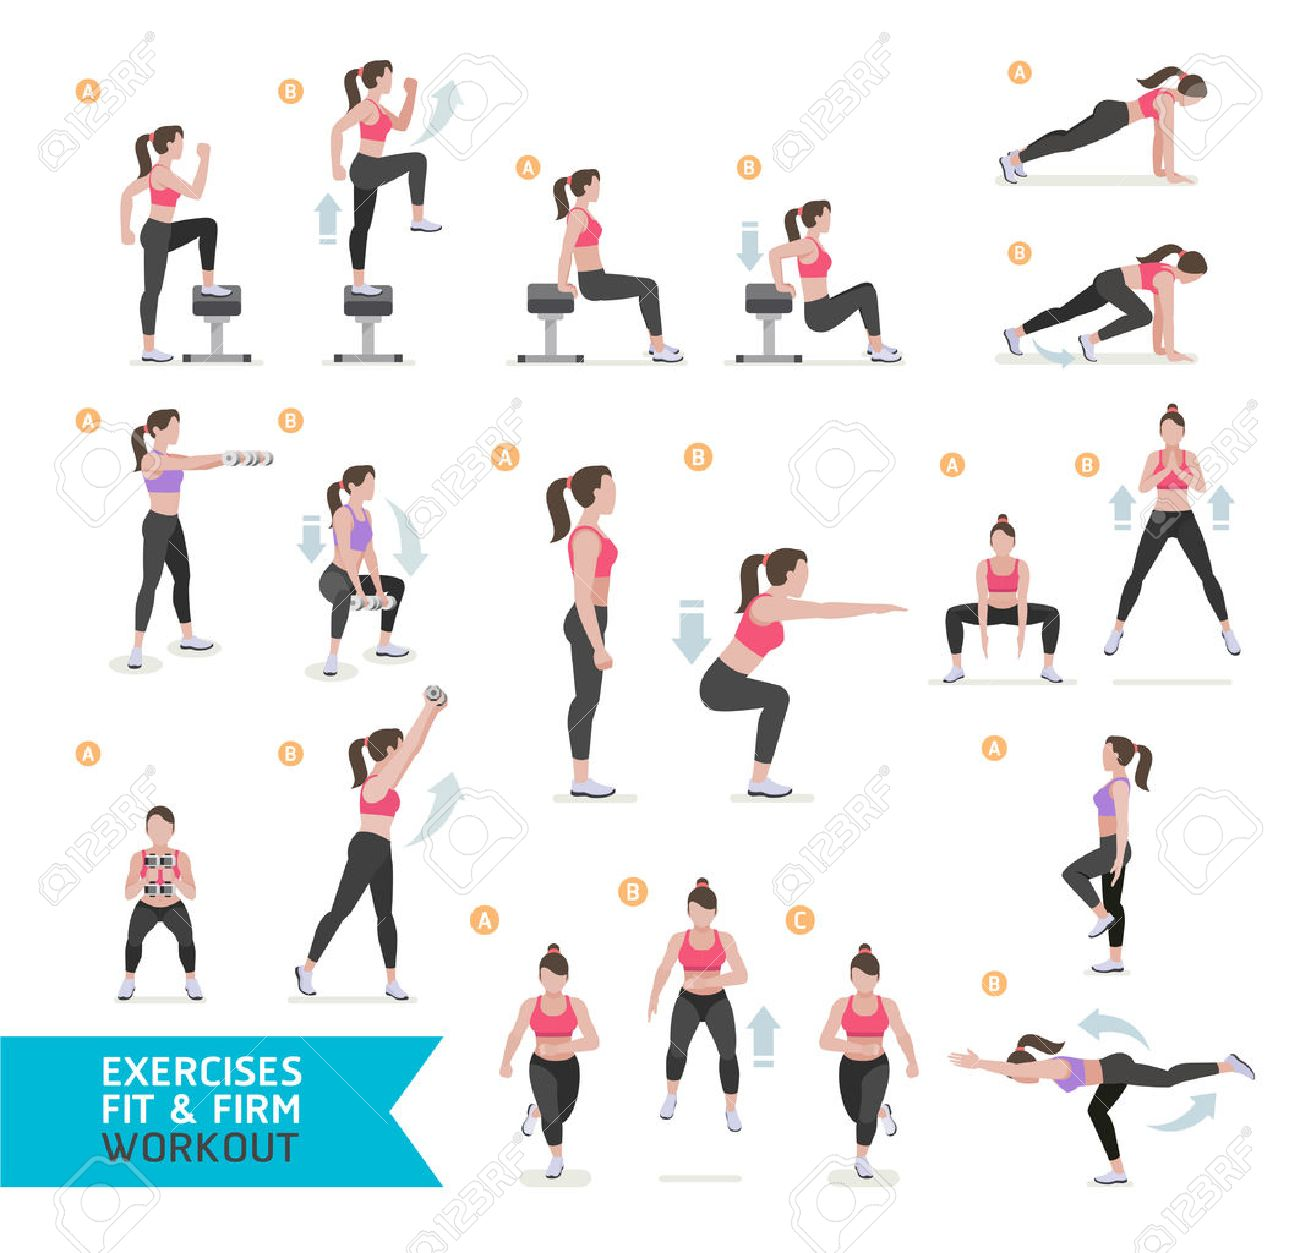 Woman Workout Fitness Aerobic And Exercises Vector Illustration Royalty Free Cliparts Vectors And Stock Illustration Image 66774946 Find the perfect strength training women stock vector image. woman workout fitness aerobic and exercises vector illustration